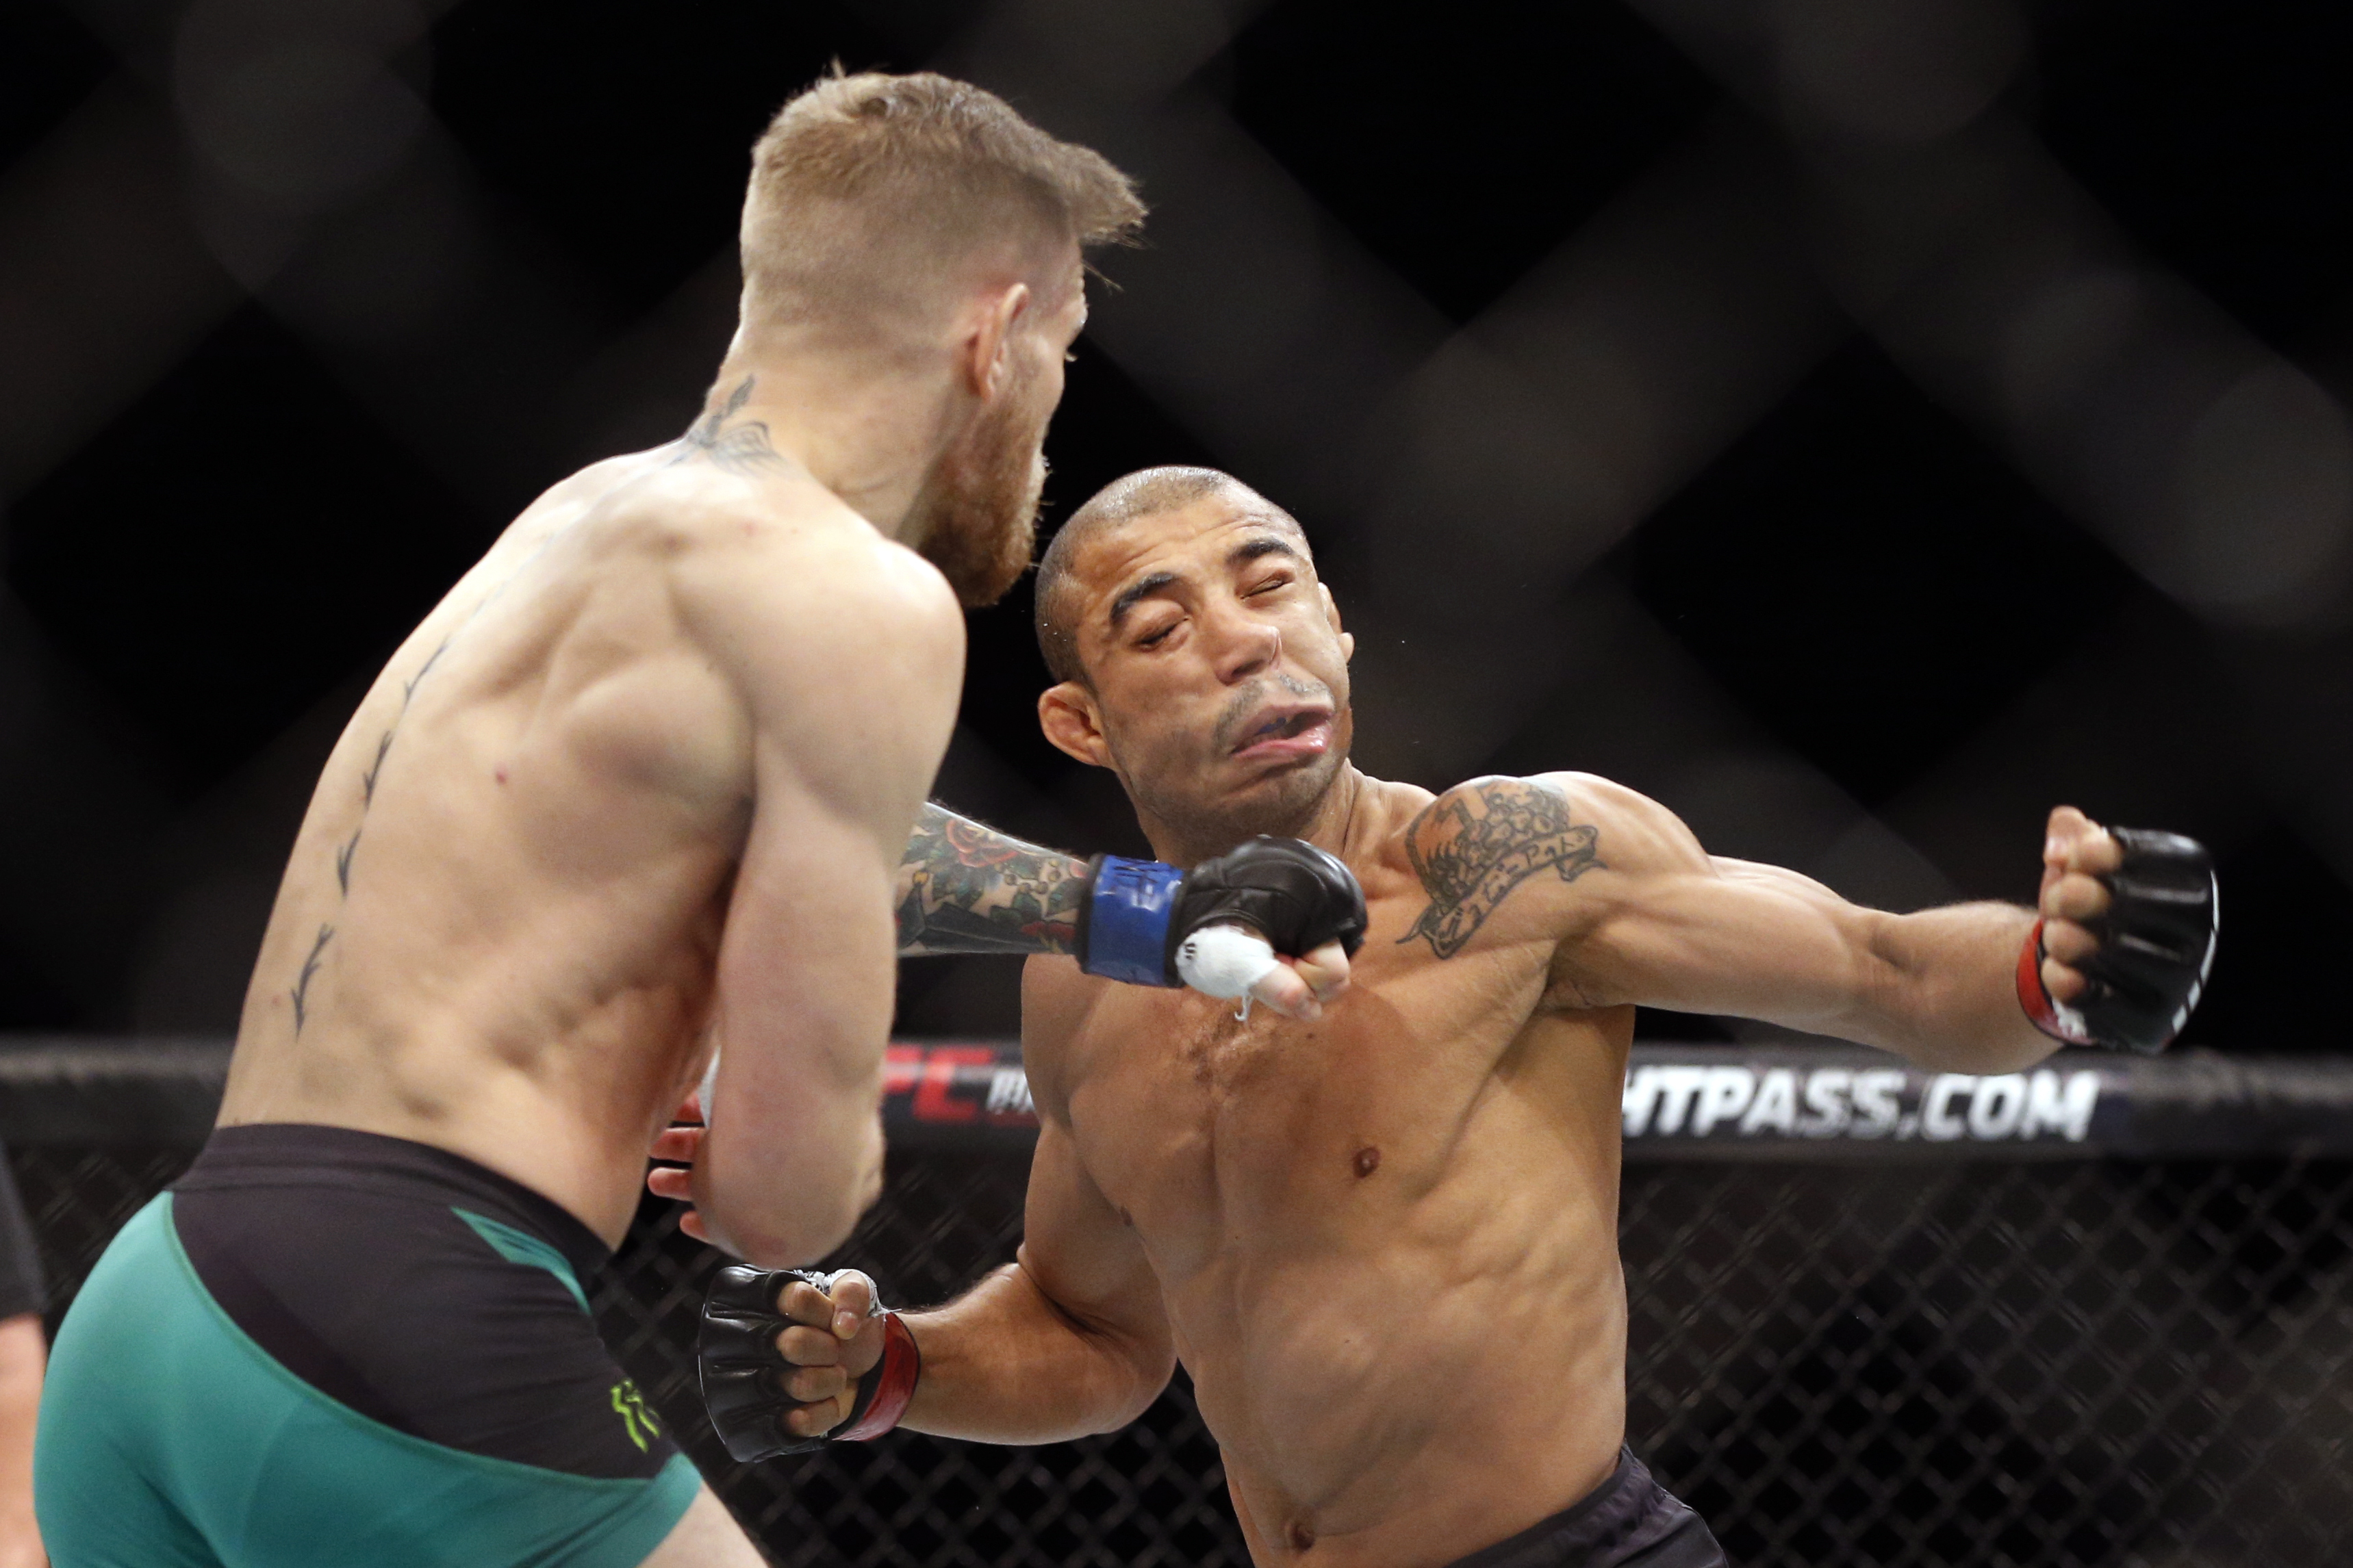 McGregor knocked out Jose Aldo in 13 seconds in 2015 to claim the UFC featherweight title